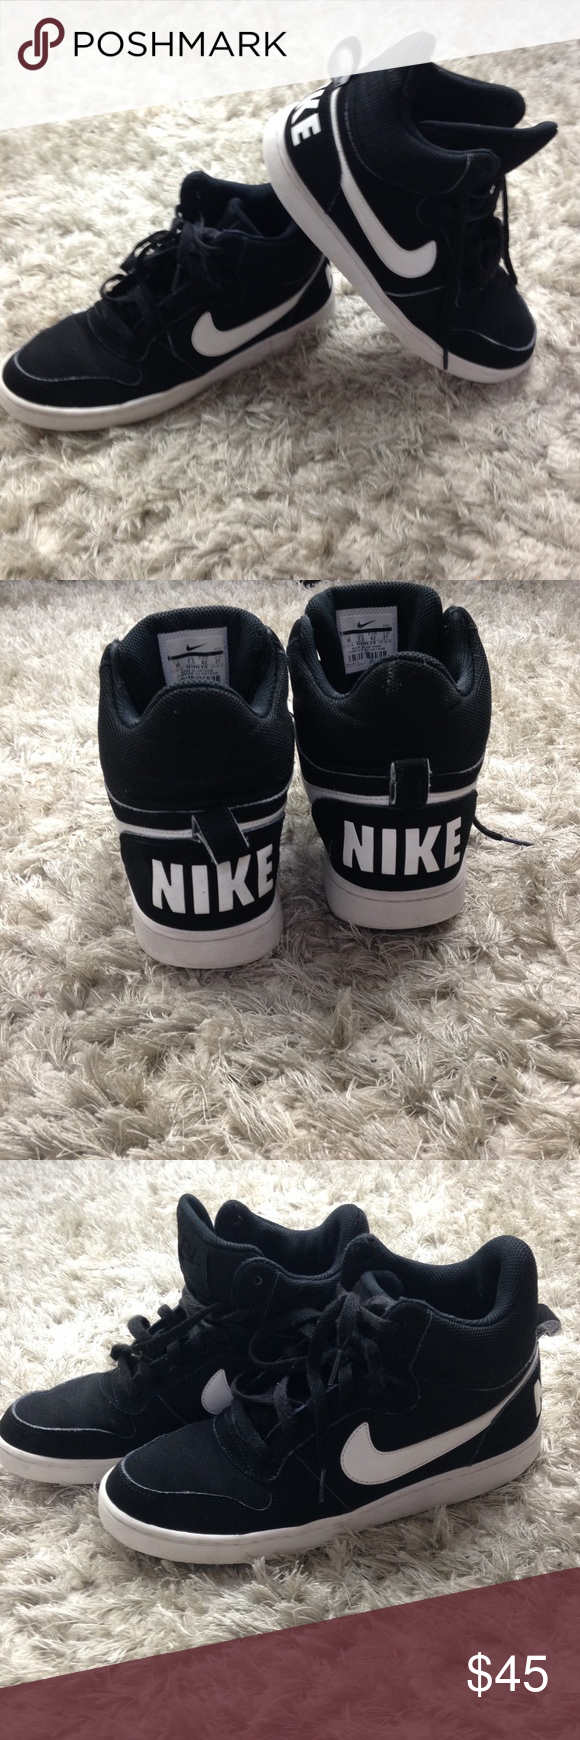 wholesale dealer 763bd cb63b Nike Recreational MID Basketball Shoes US Size 10 Womens ( or Mens if you  want